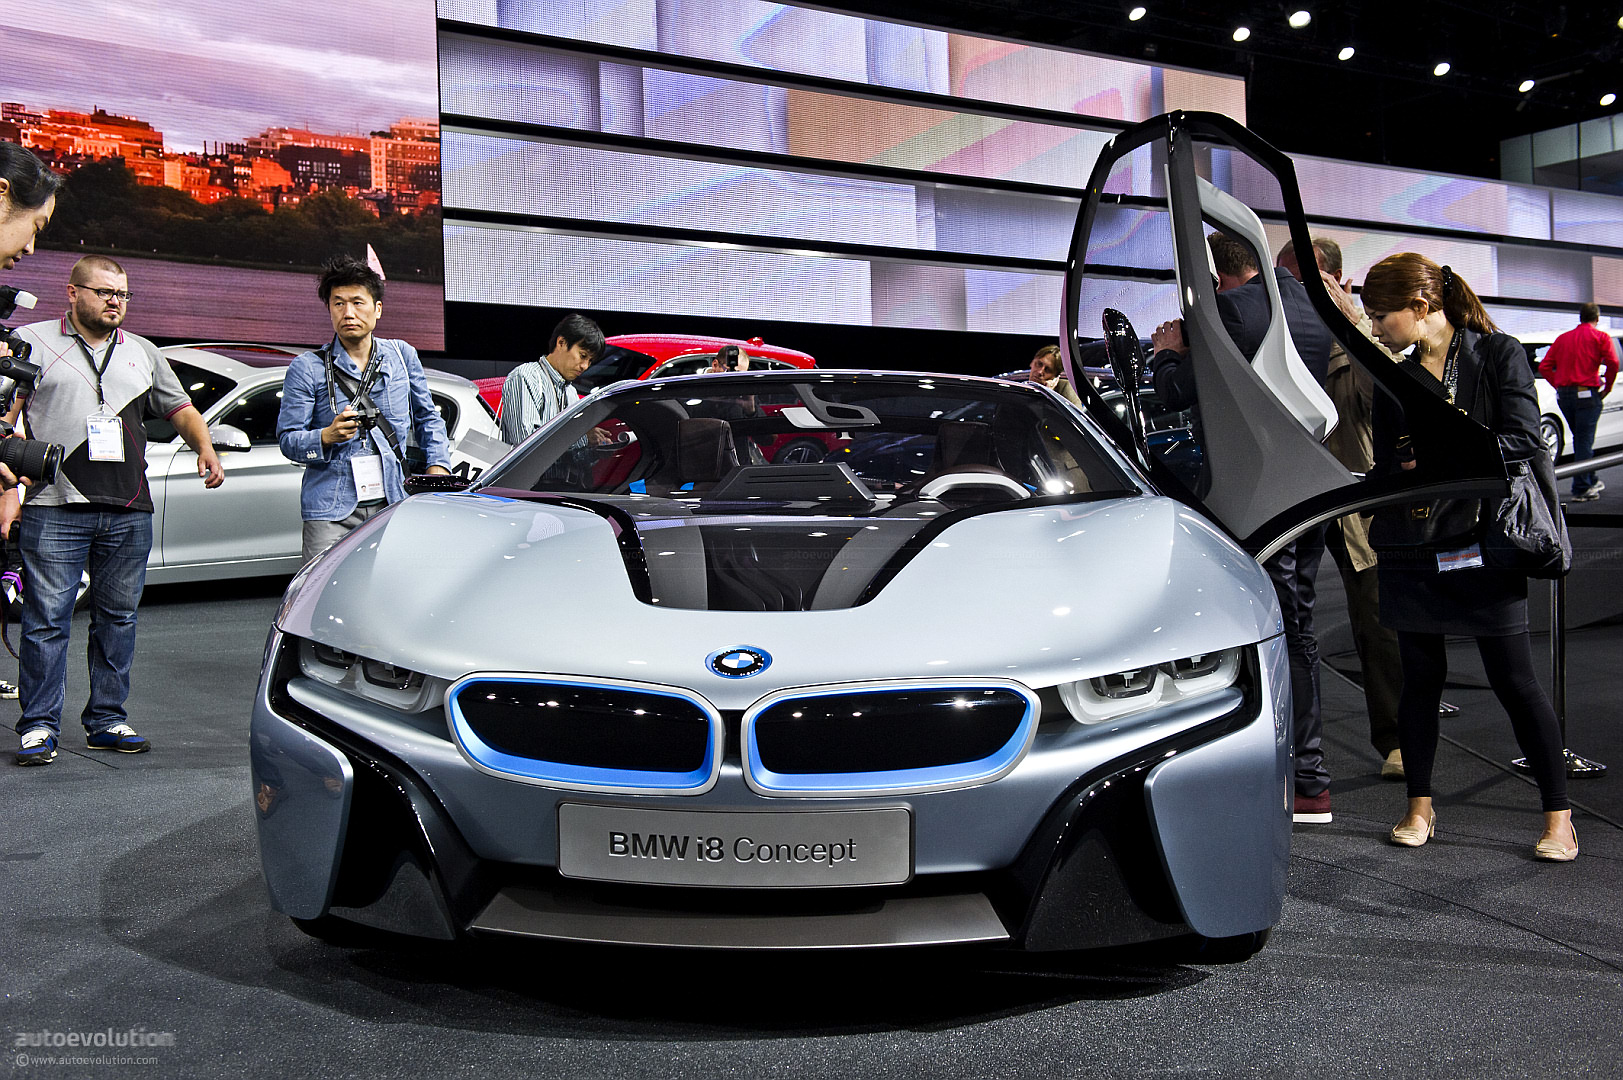 BMW Bringing i3 and i8 Concepts to Tokyo - autoevolution